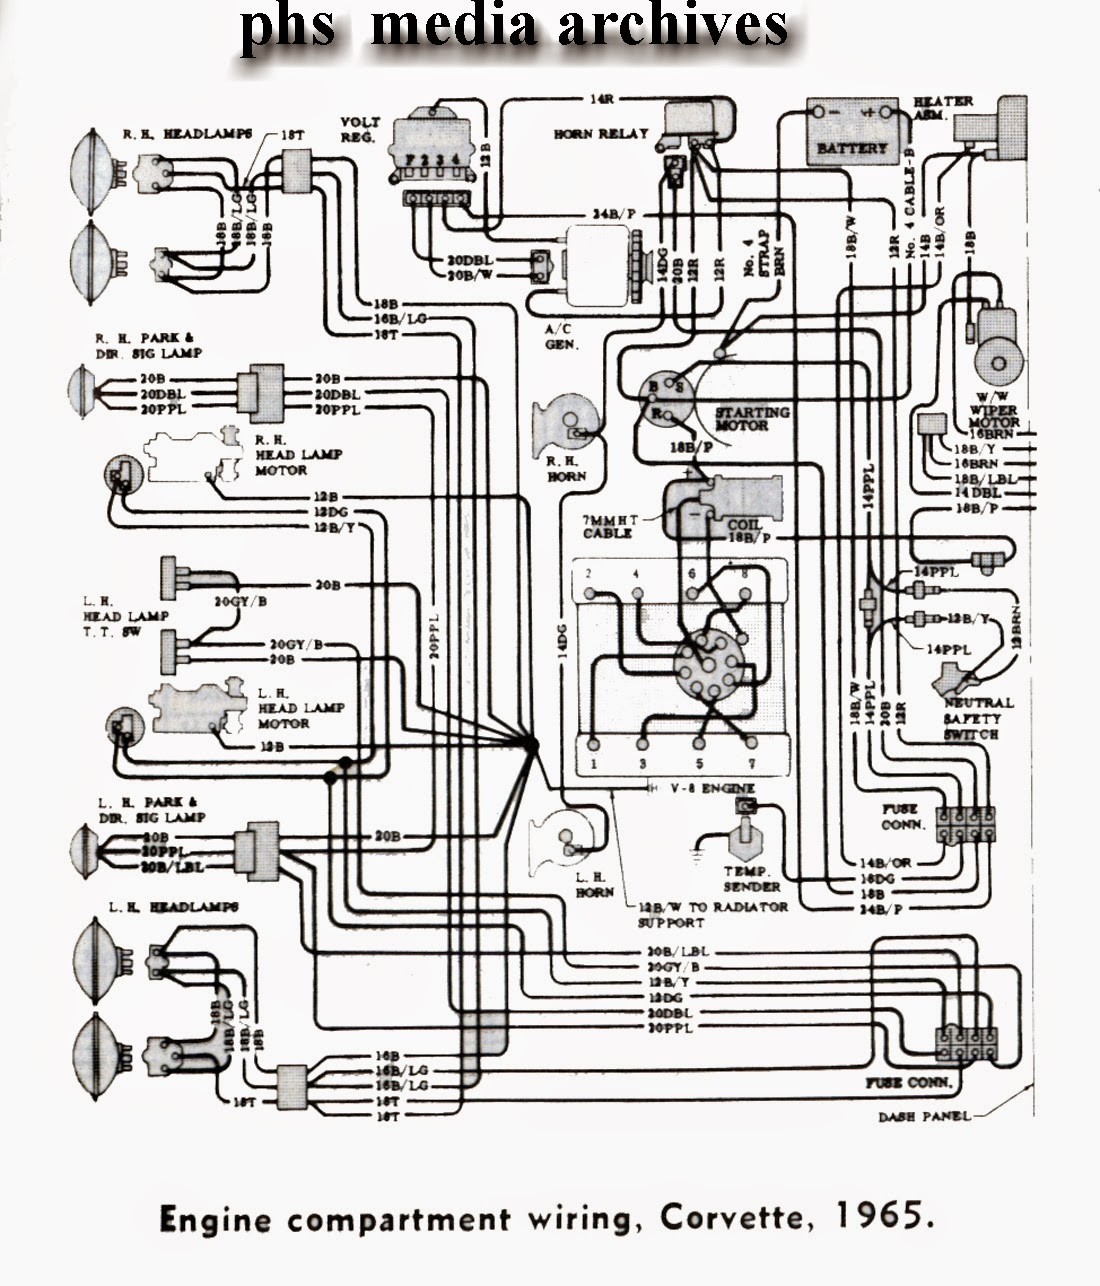 hight resolution of ls1 engine wiring harnes diagram click the image to